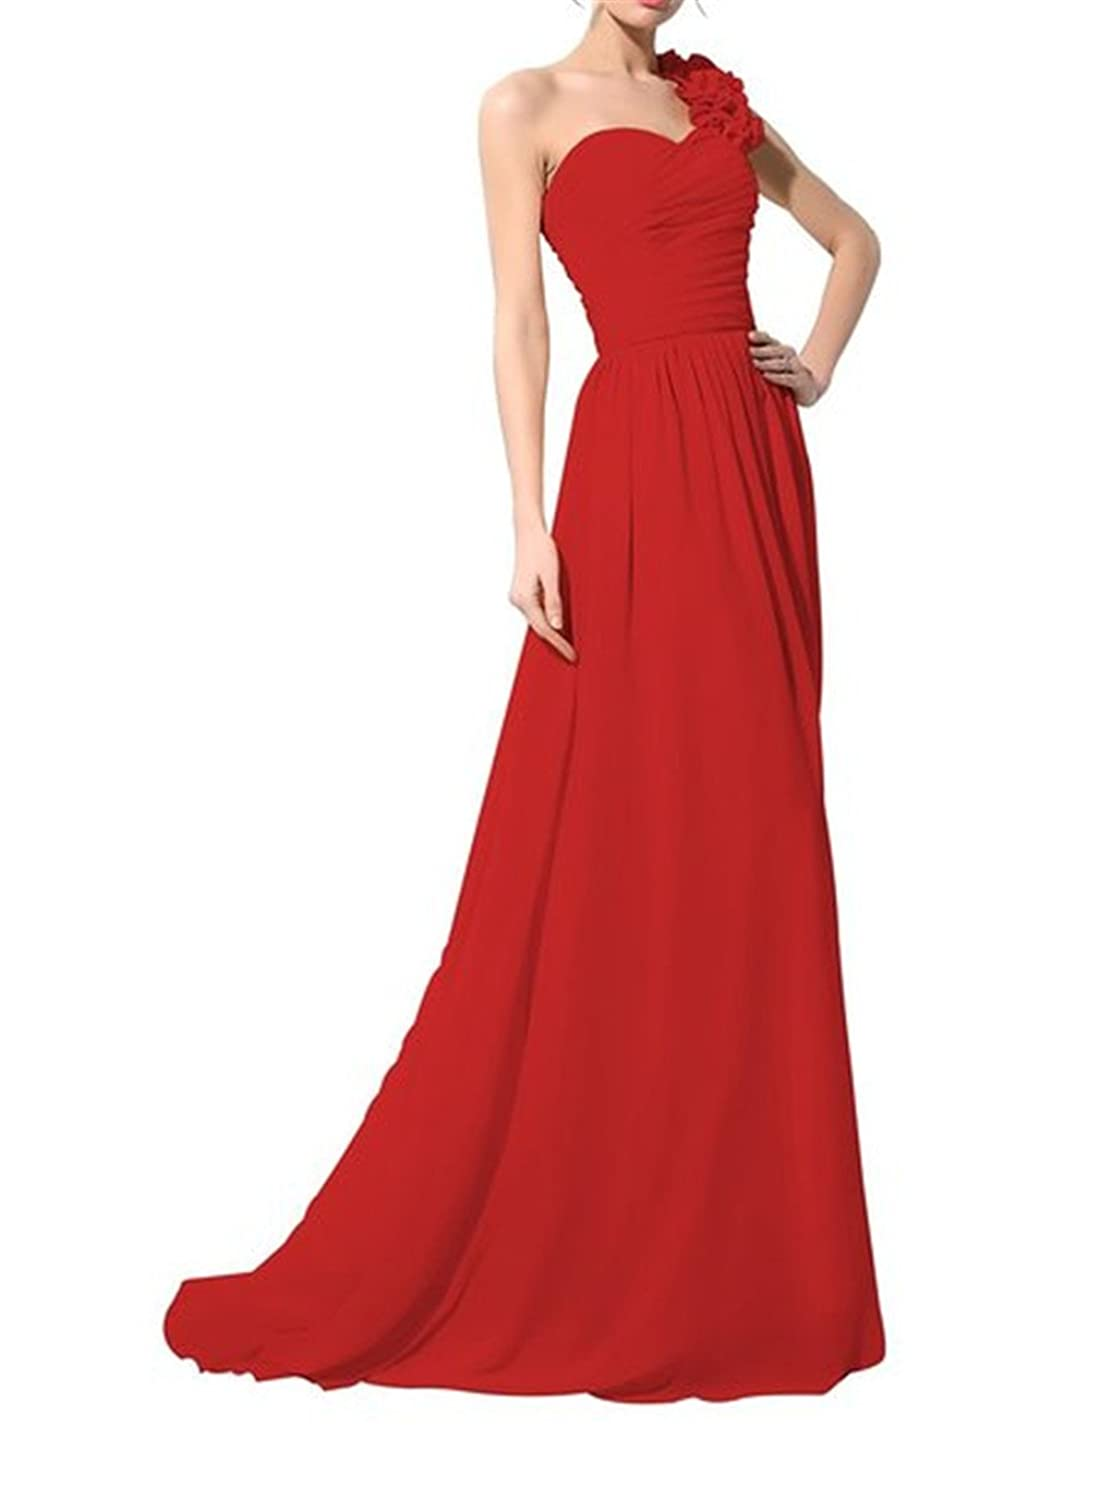 YingLuo Appliques Beaded One-Shoulder Gowns Chiffon Long Evening Dress